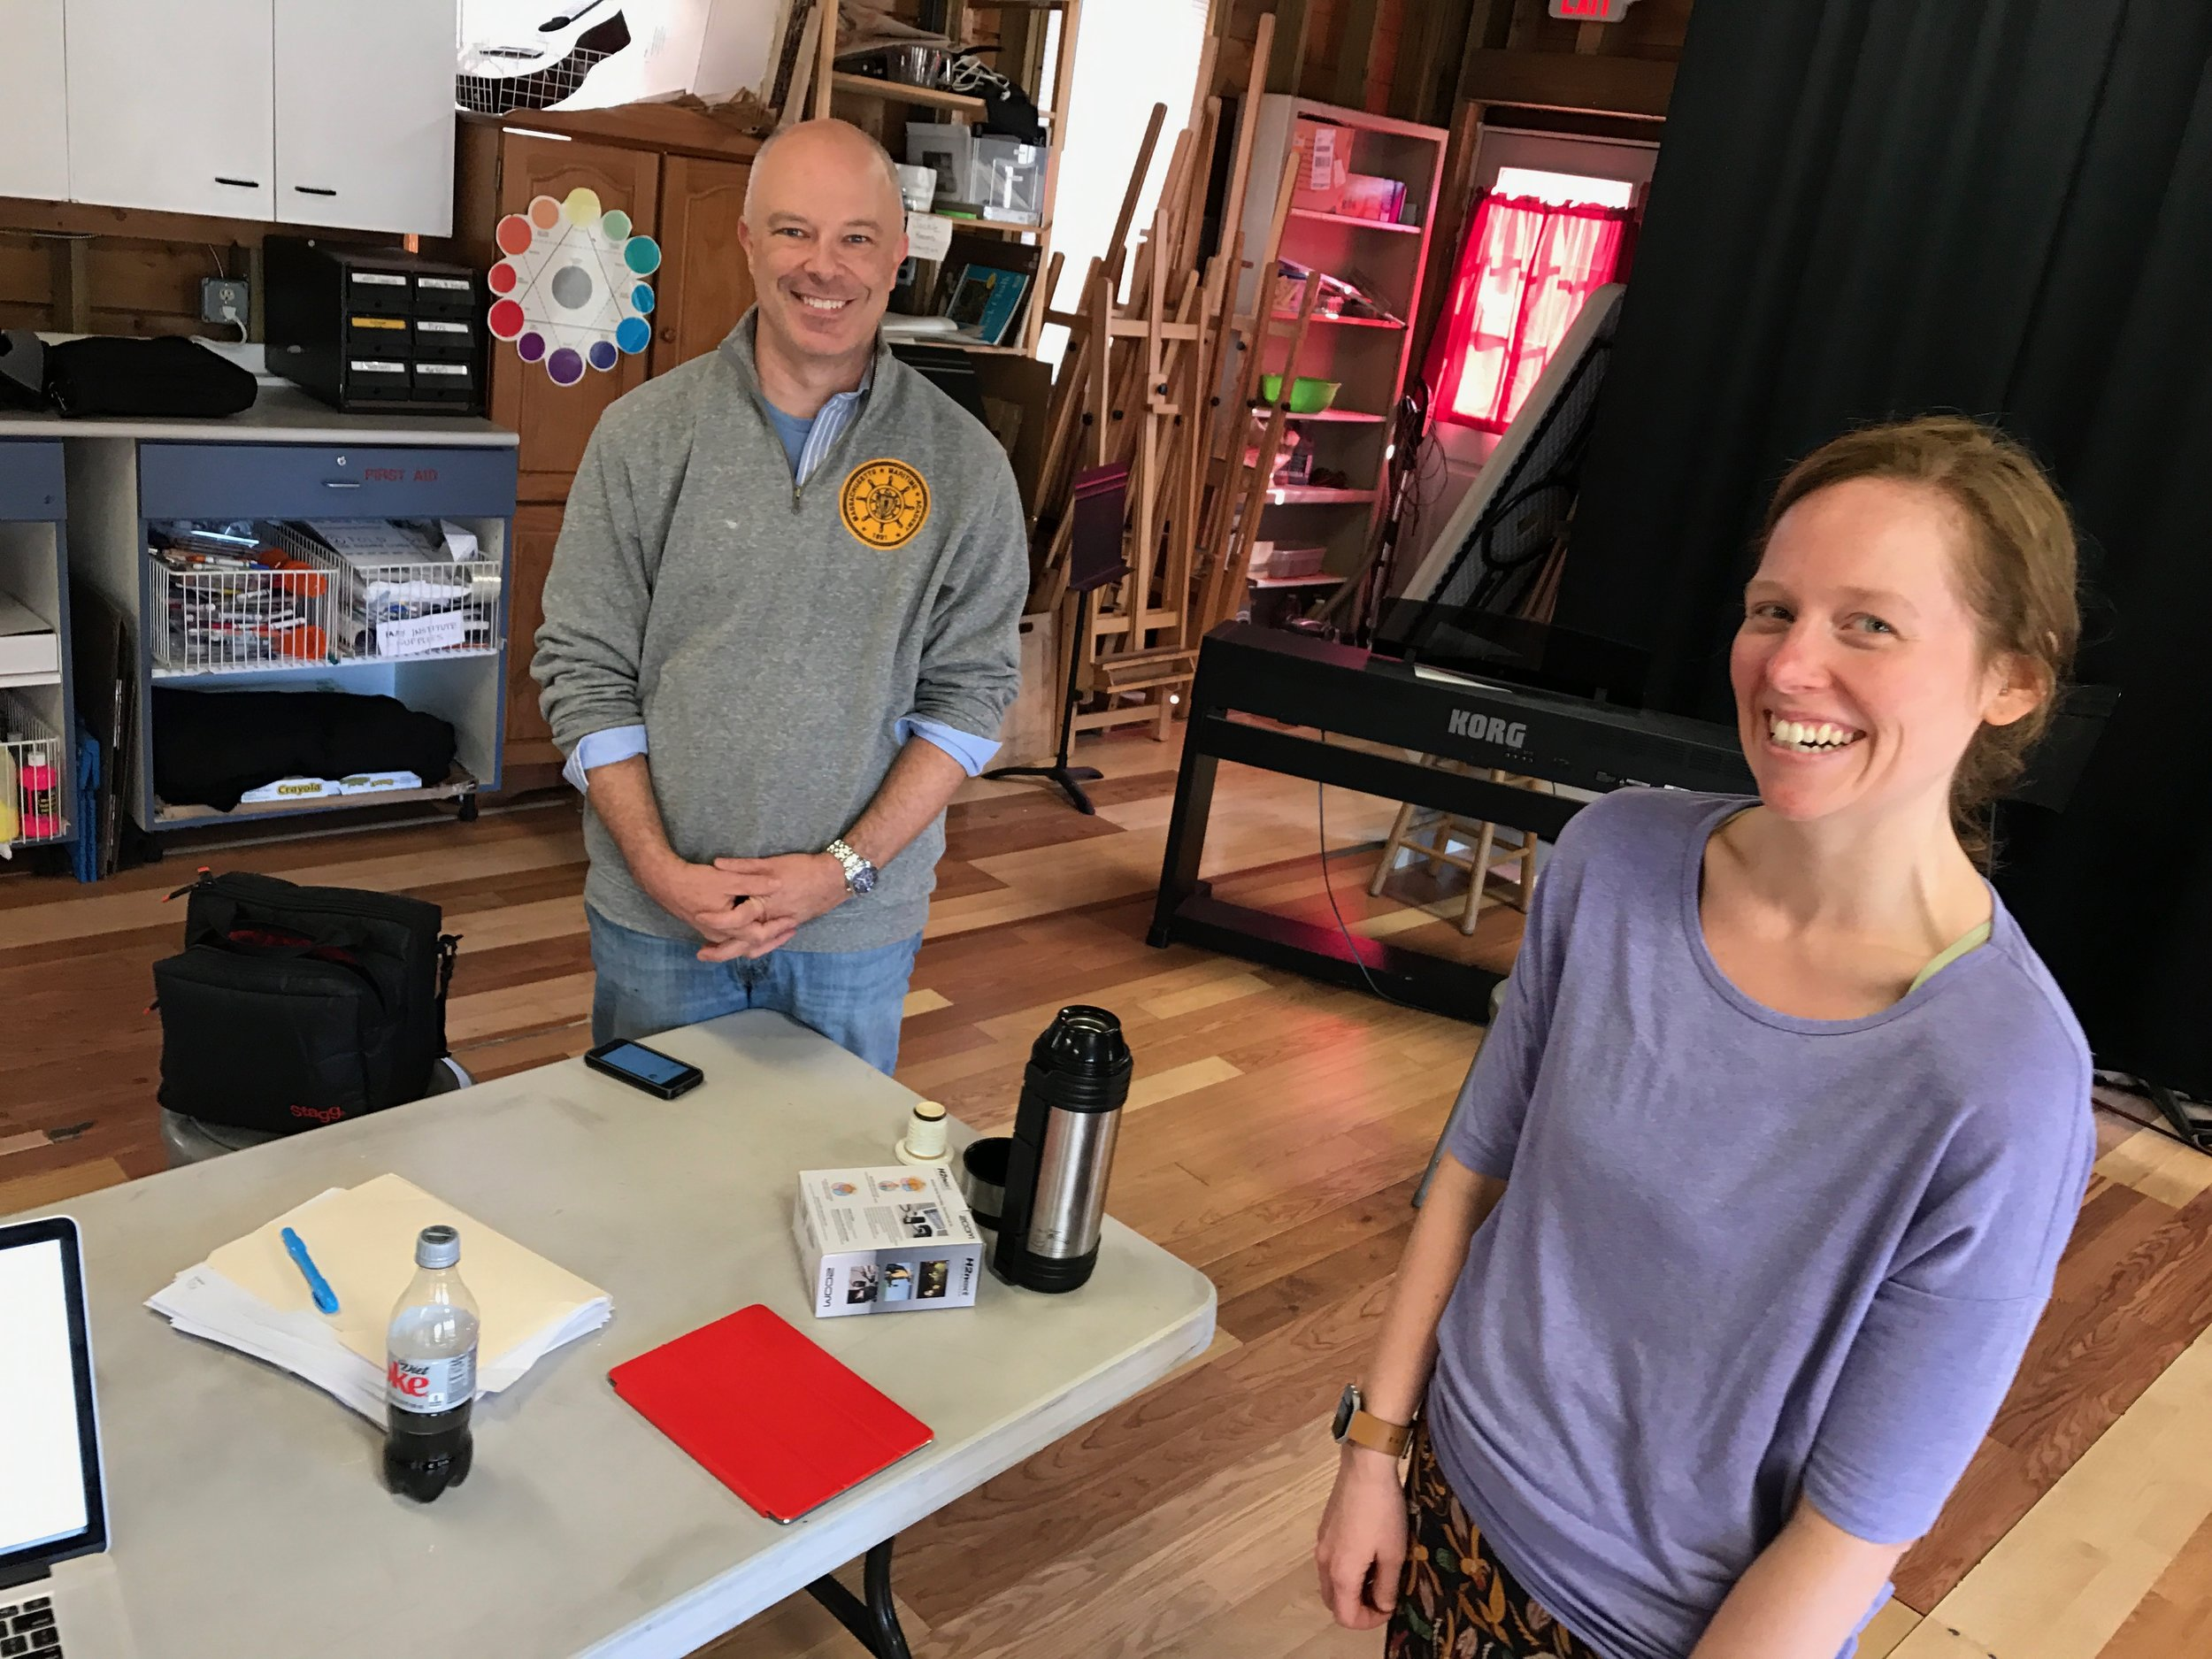 Ian and the amazingly talented Anna Bottsford during our recording of the party scene sound effects. It was crucial to get this right in order for the audience to visualize the off-scene action they could not see. These guys were amazing!